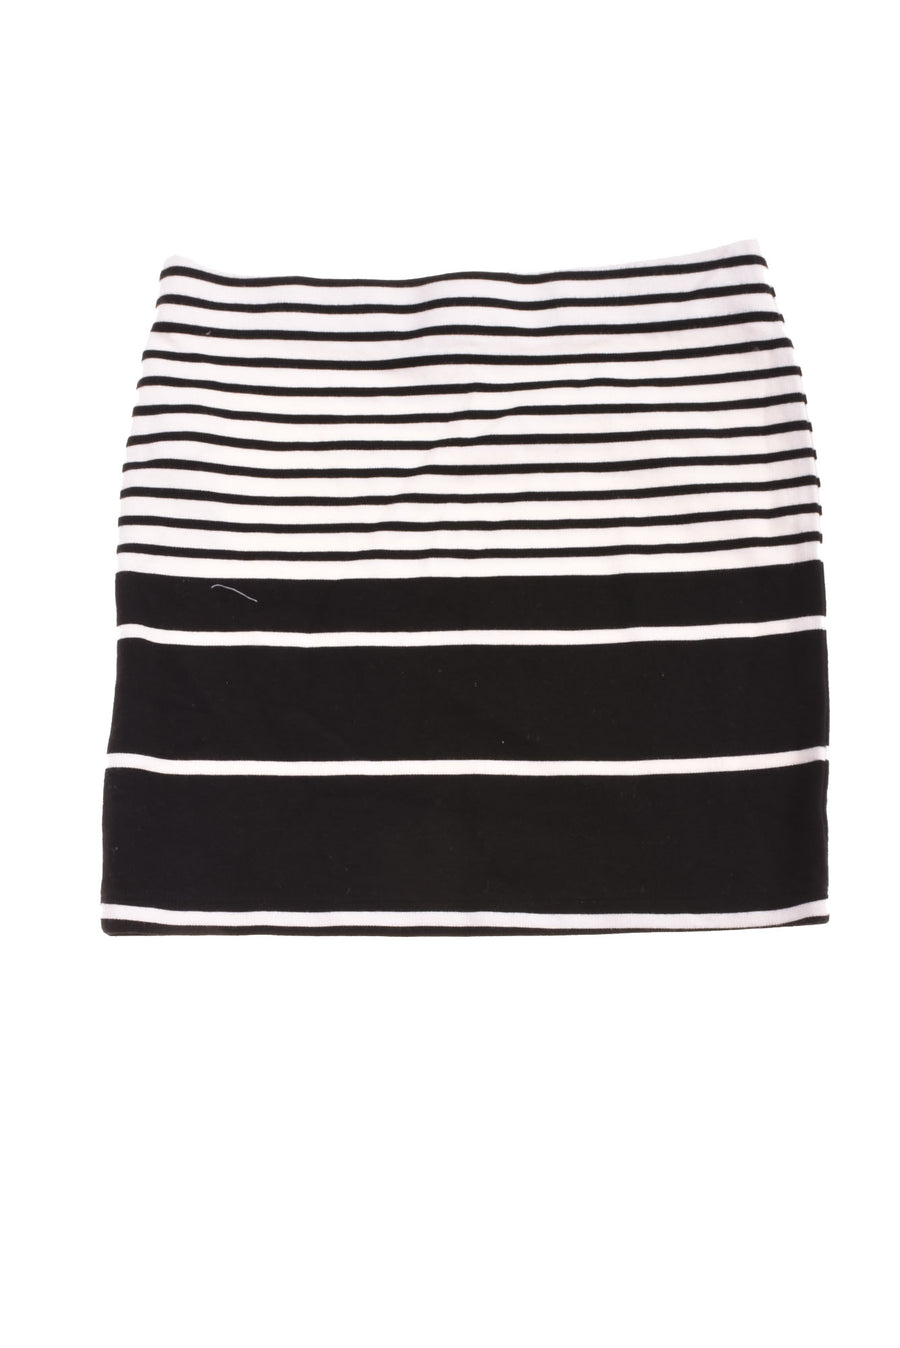 NEW Forever 21 Women's Skirt Small Black & White